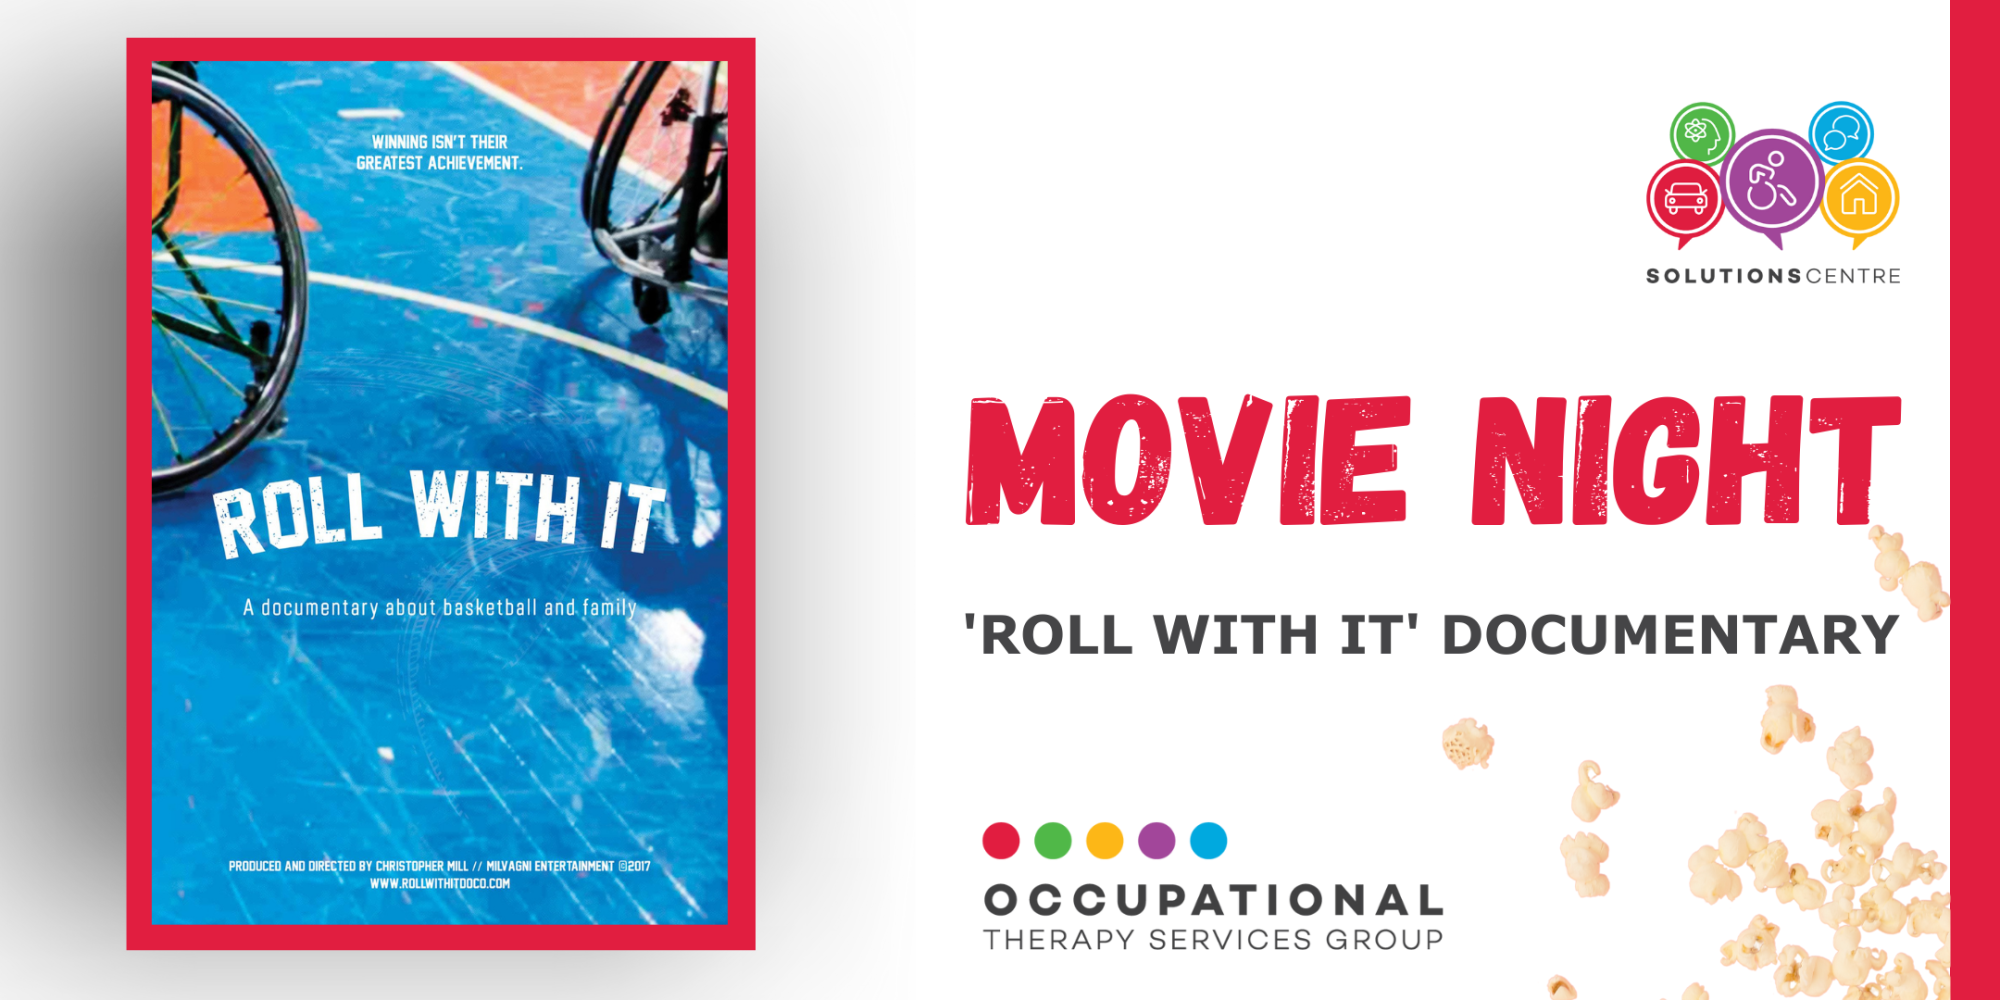 MOVIE NIGHT: 'ROLL WITH IT' DOCUMENTARY